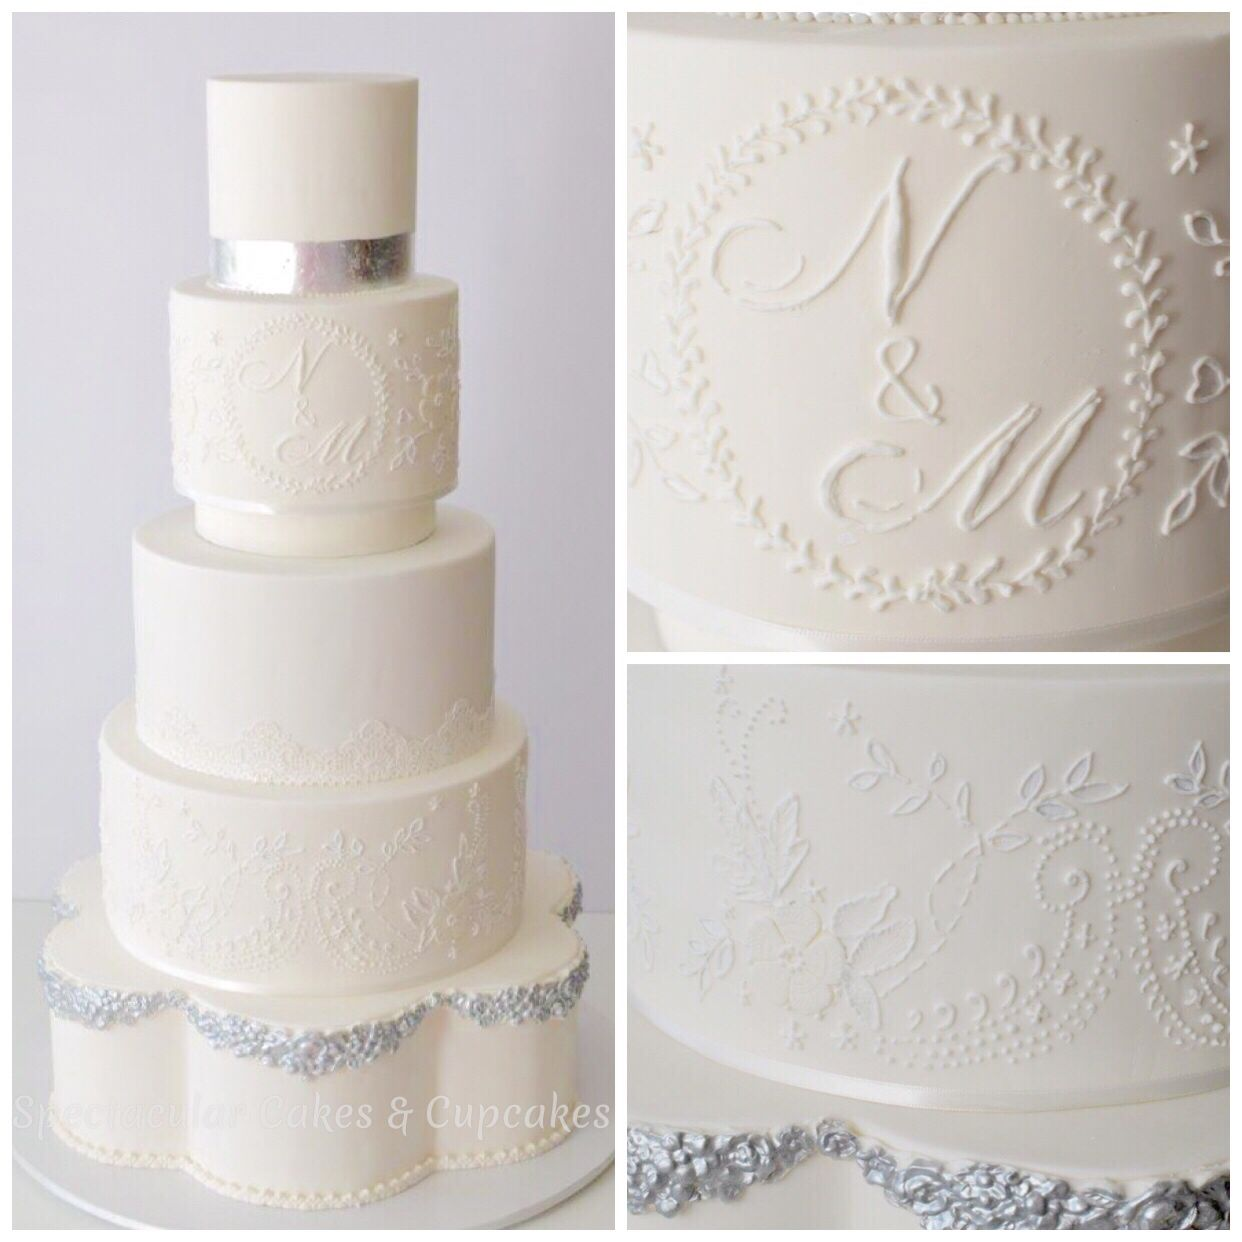 Sydney 5 tier wedding cakes | Wedding & Engagement Cakes Sydney ...